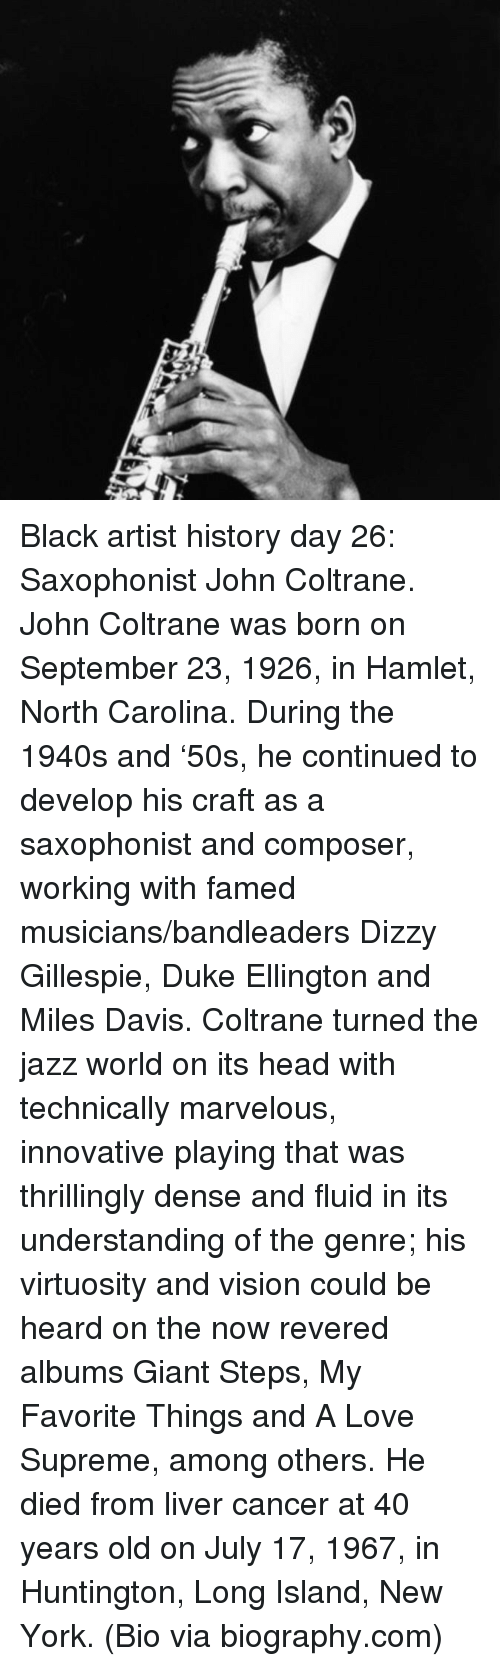 day 26: <p>Black artist history day 26: Saxophonist John Coltrane.</p>  <p>John Coltrane was born on September 23, 1926, in Hamlet, North Carolina. During the 1940s and &lsquo;50s, he continued to develop his craft as a saxophonist and composer, working with famed musicians/bandleaders Dizzy Gillespie, Duke Ellington and Miles Davis. Coltrane turned the jazz world on its head with technically marvelous, innovative playing that was thrillingly dense and fluid in its understanding of the genre; his virtuosity and vision could be heard on the now revered albums Giant Steps, My Favorite Things and A Love Supreme, among others. He died from liver cancer at 40 years old on July 17, 1967, in Huntington, Long Island, New York. (Bio via biography.com)</p>